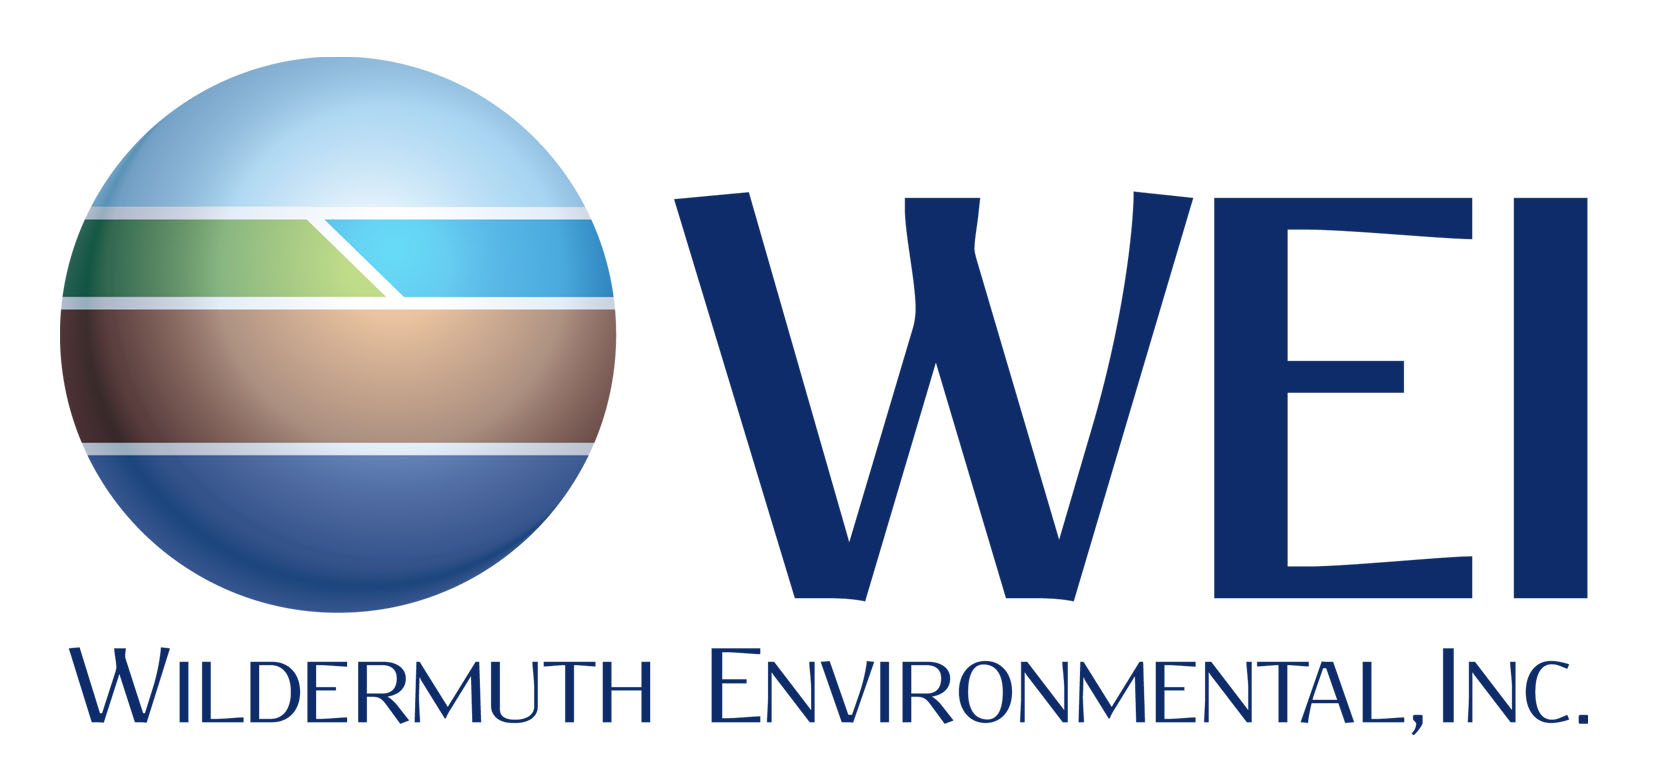 Wildermuth Environmental